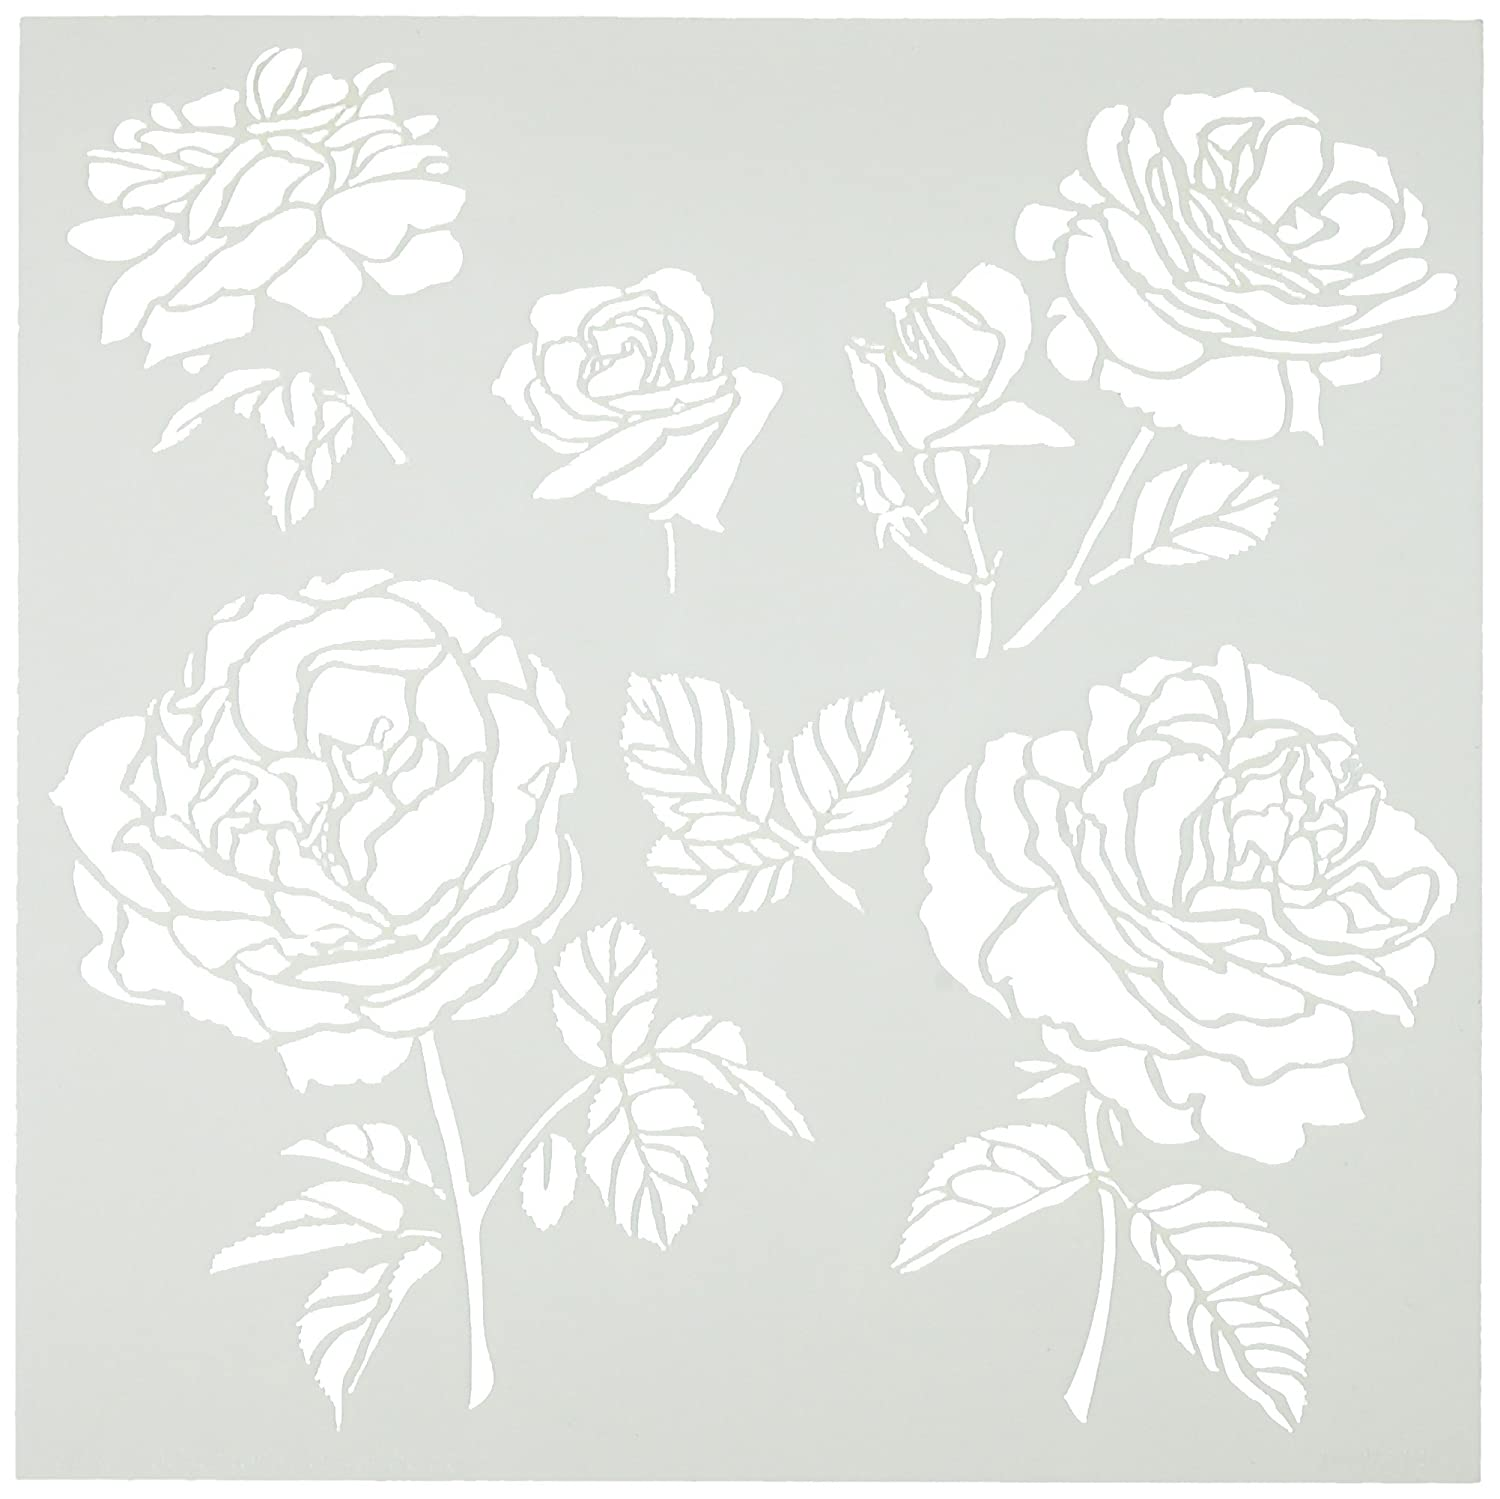 Crafters Workshop Plastic Template 6-inch x 6-inch Cabbage Roses TCW6X6-514